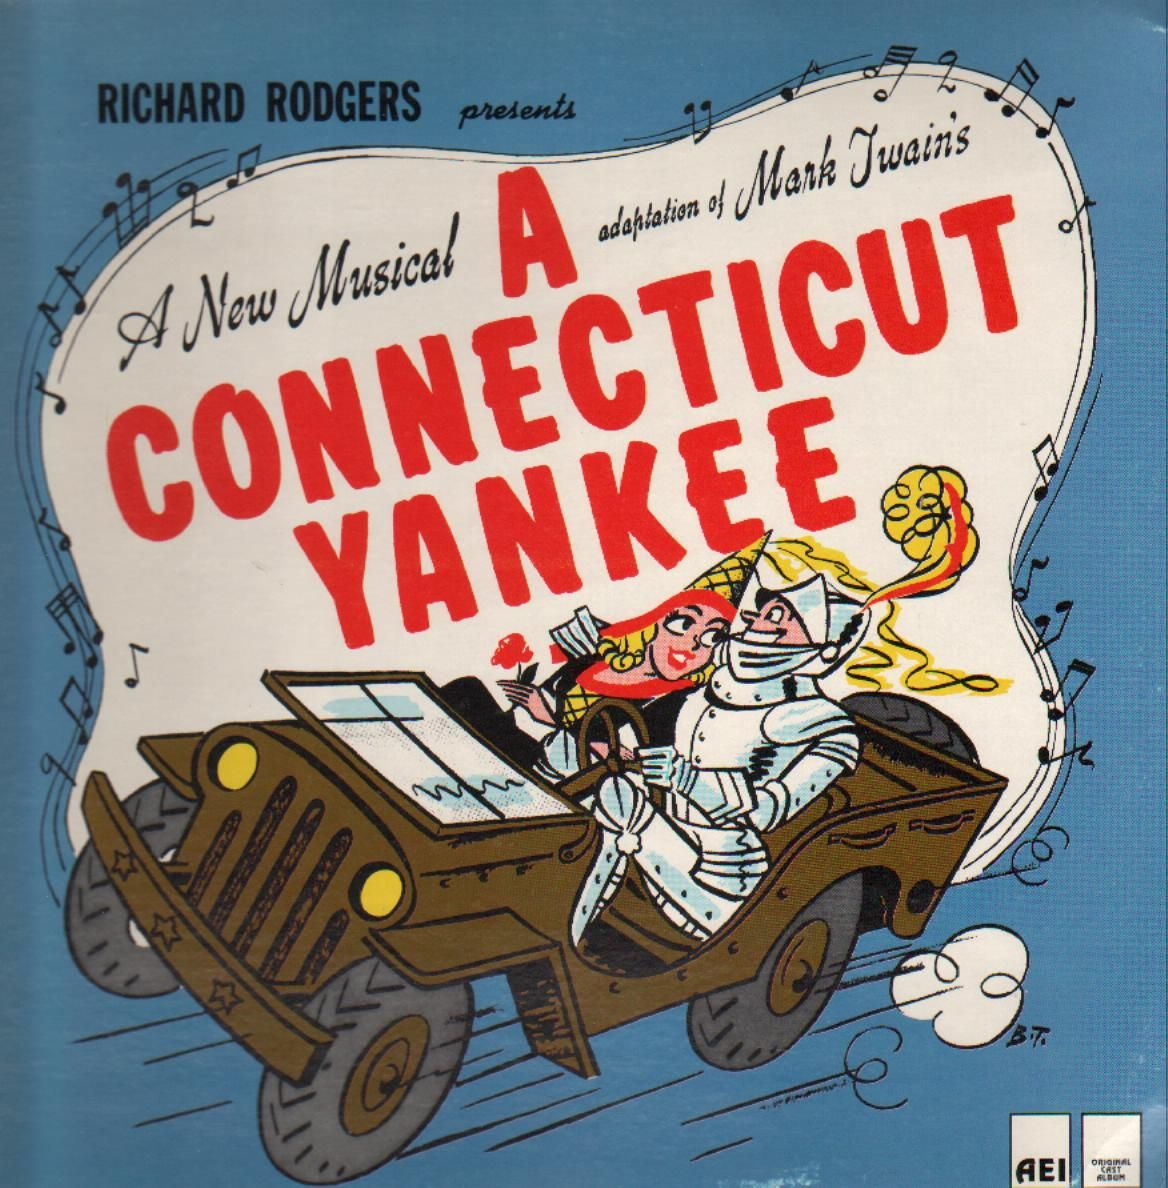 connecticut yankee essays A connecticut yankee in king arthur's court was the first book that mark twain finished after publishing the adventures of huckleberry finn (1884) because of its setting, it often is classified.